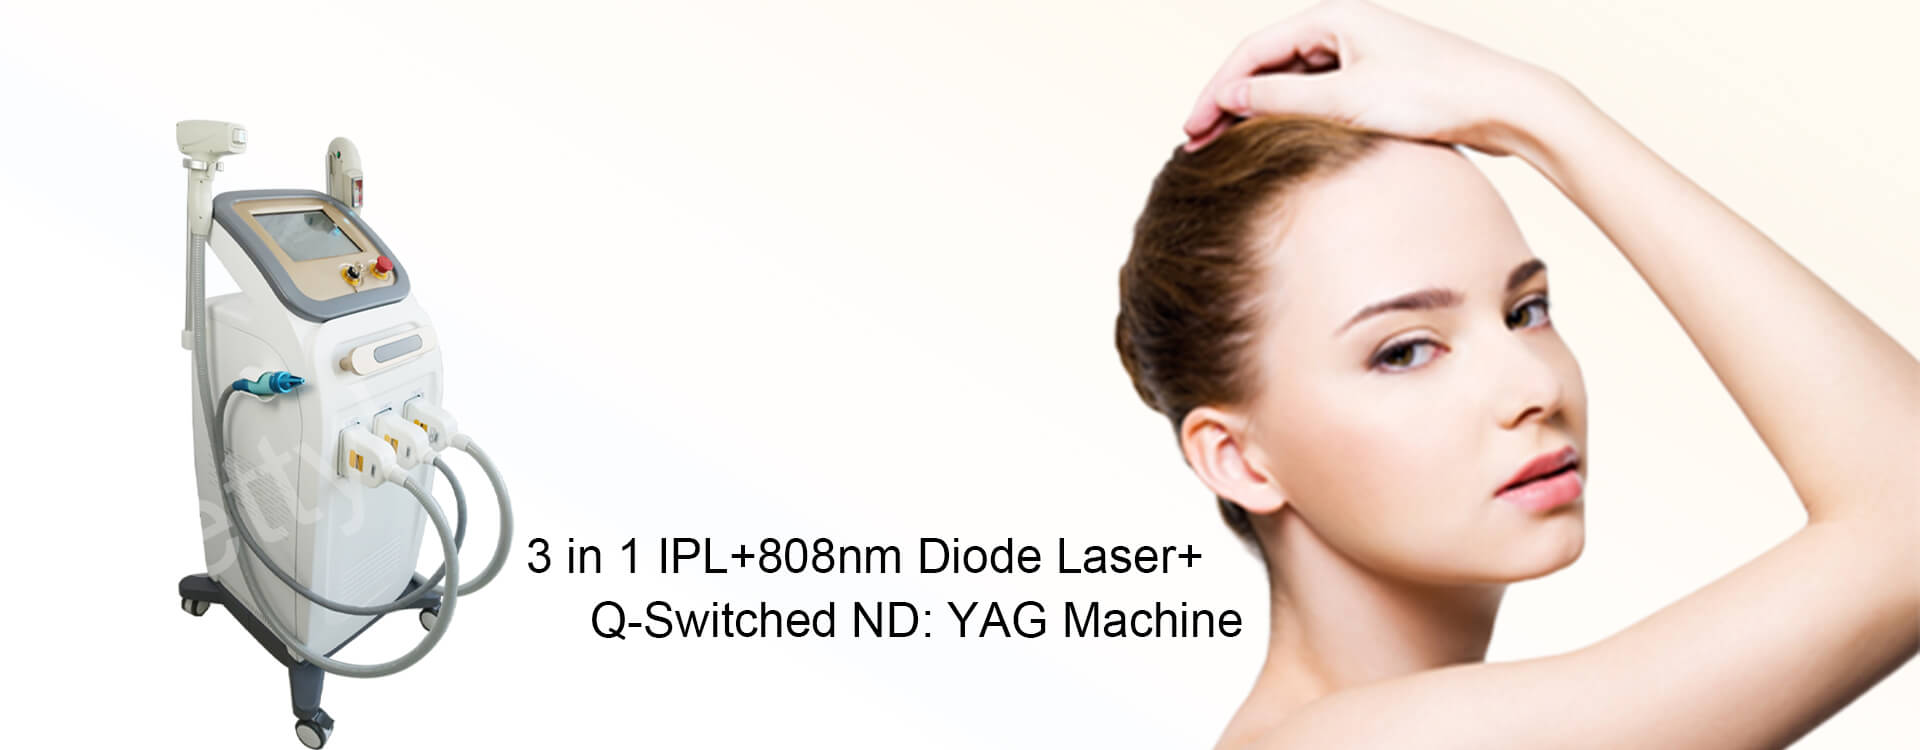 3 in 1 IPL+808nm Diode Laser+Q-Switched ND: YAG Machine